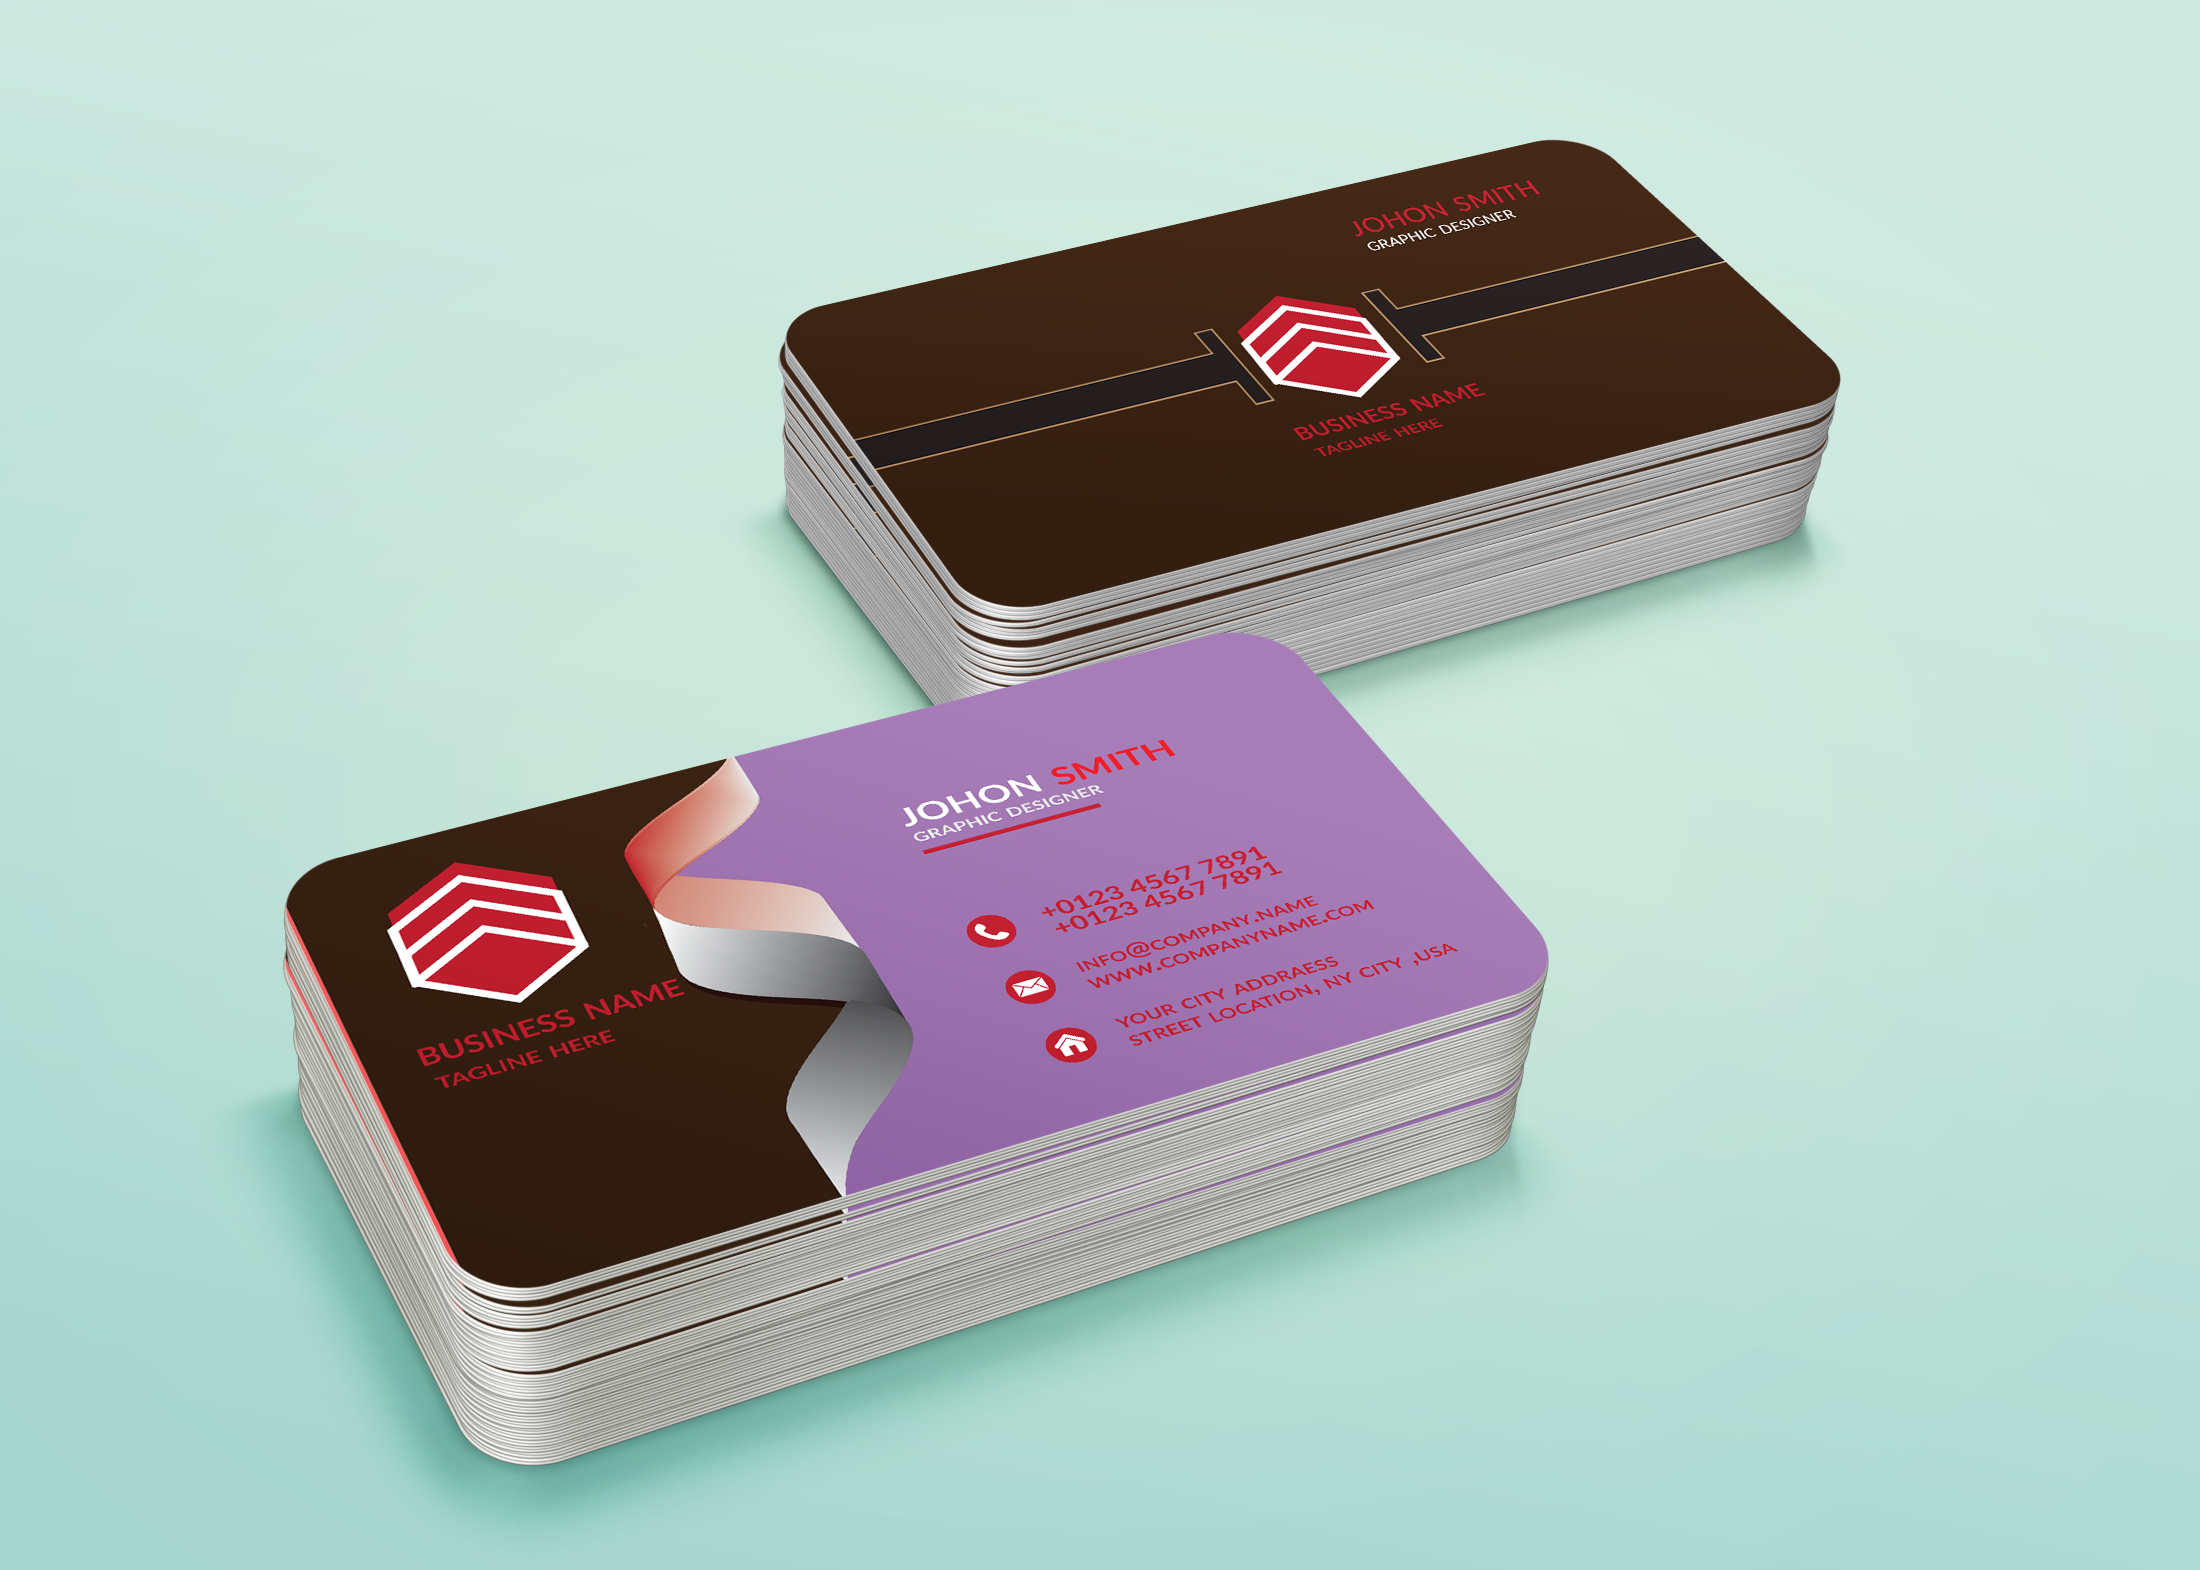 Ibrahim7234 I Will Design A Business Card With An Attractive Design For 5 On Fiverr Com In 2021 Business Cards Moo Business Cards Cheap Business Cards